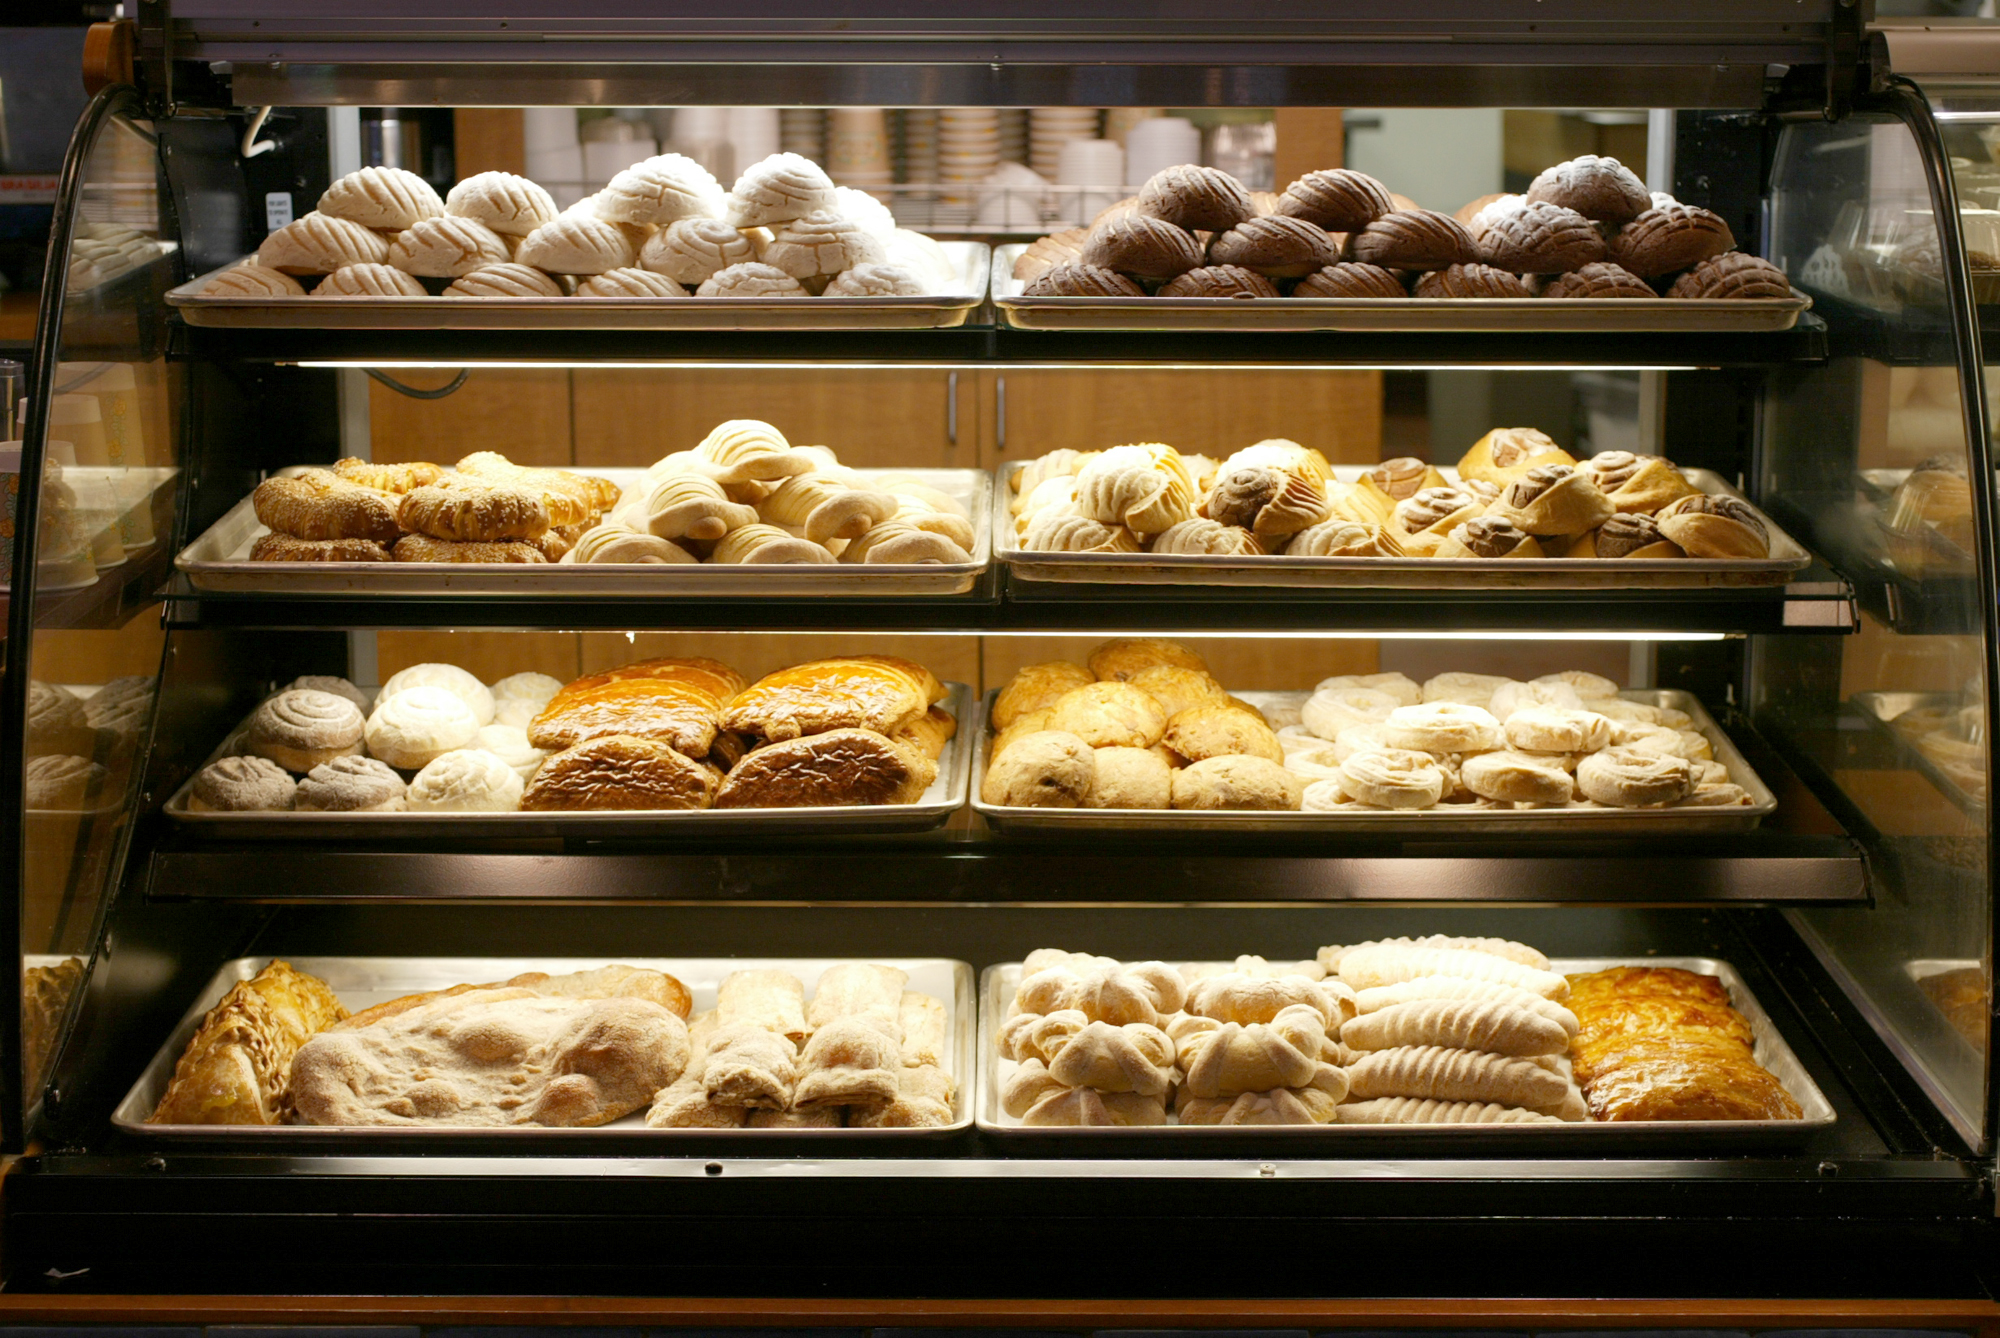 10 Dallas Panaderias Baking the City's Finest Sweet Breads